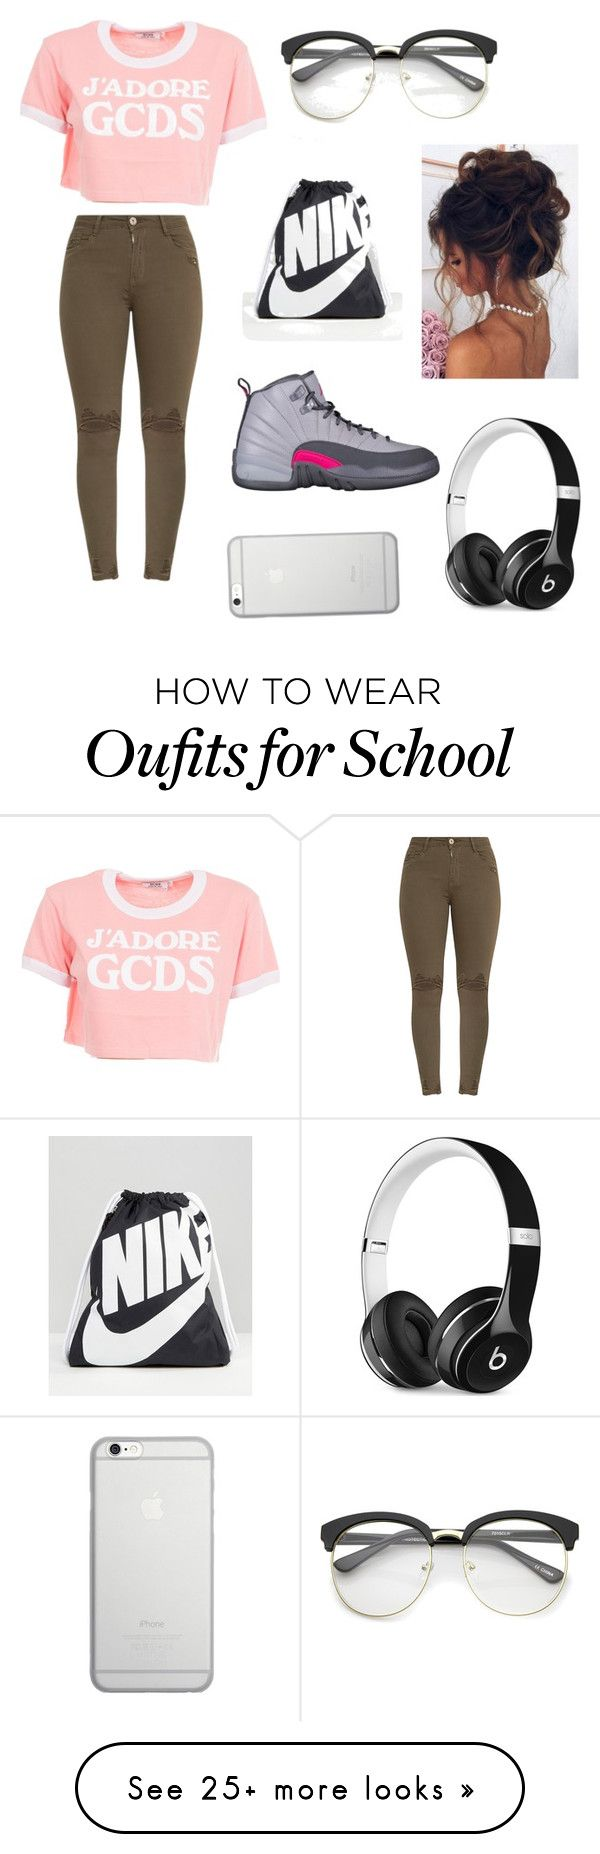 """""""Rate it 1-10 """" by arianaraygada on Polyvore featuring GCDS, ZeroUV, NIKE, Beats by Dr. Dre and Native Union"""